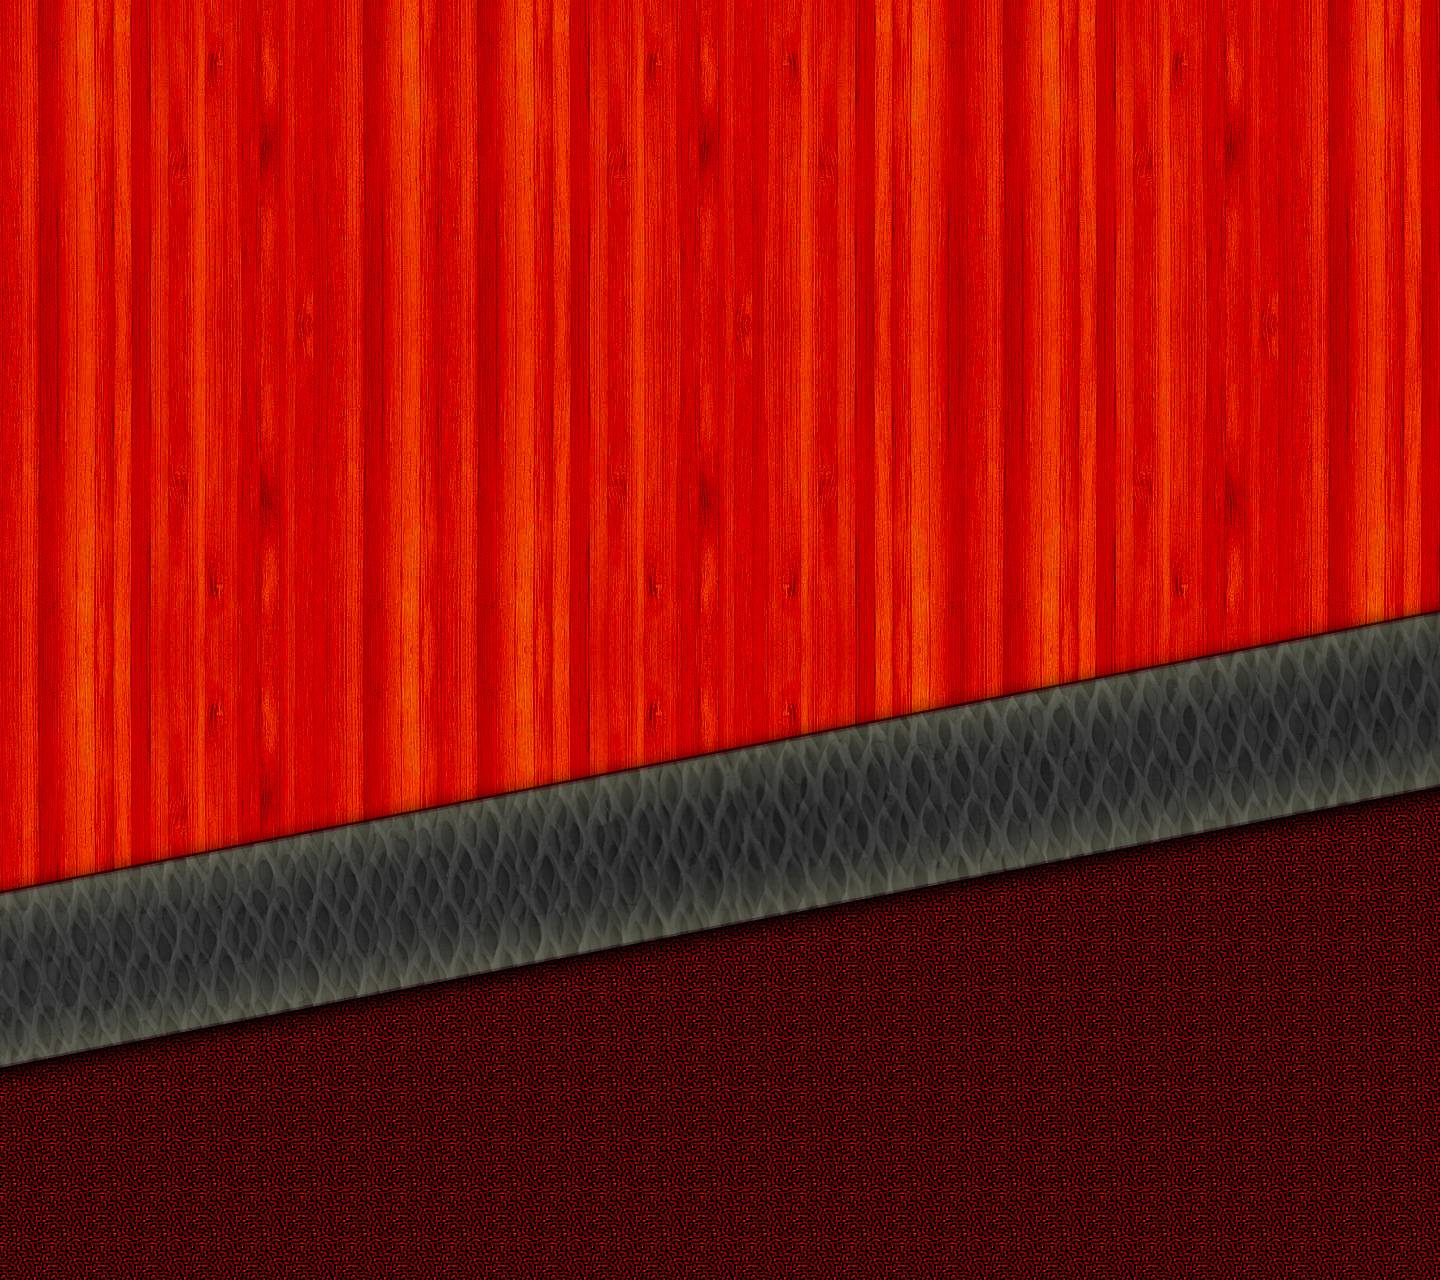 Red Wooden Panel